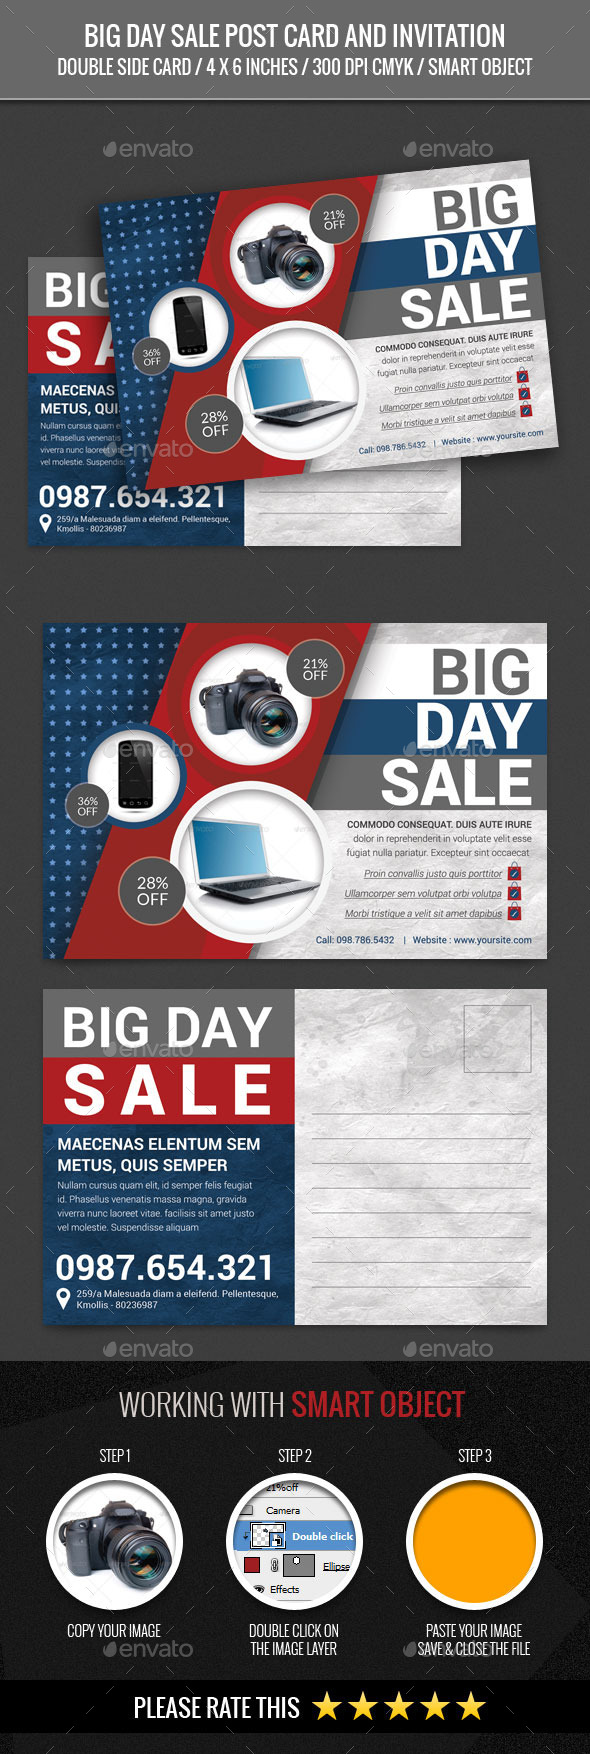 Big Day Sale Post Card Template - Cards & Invites Print Templates